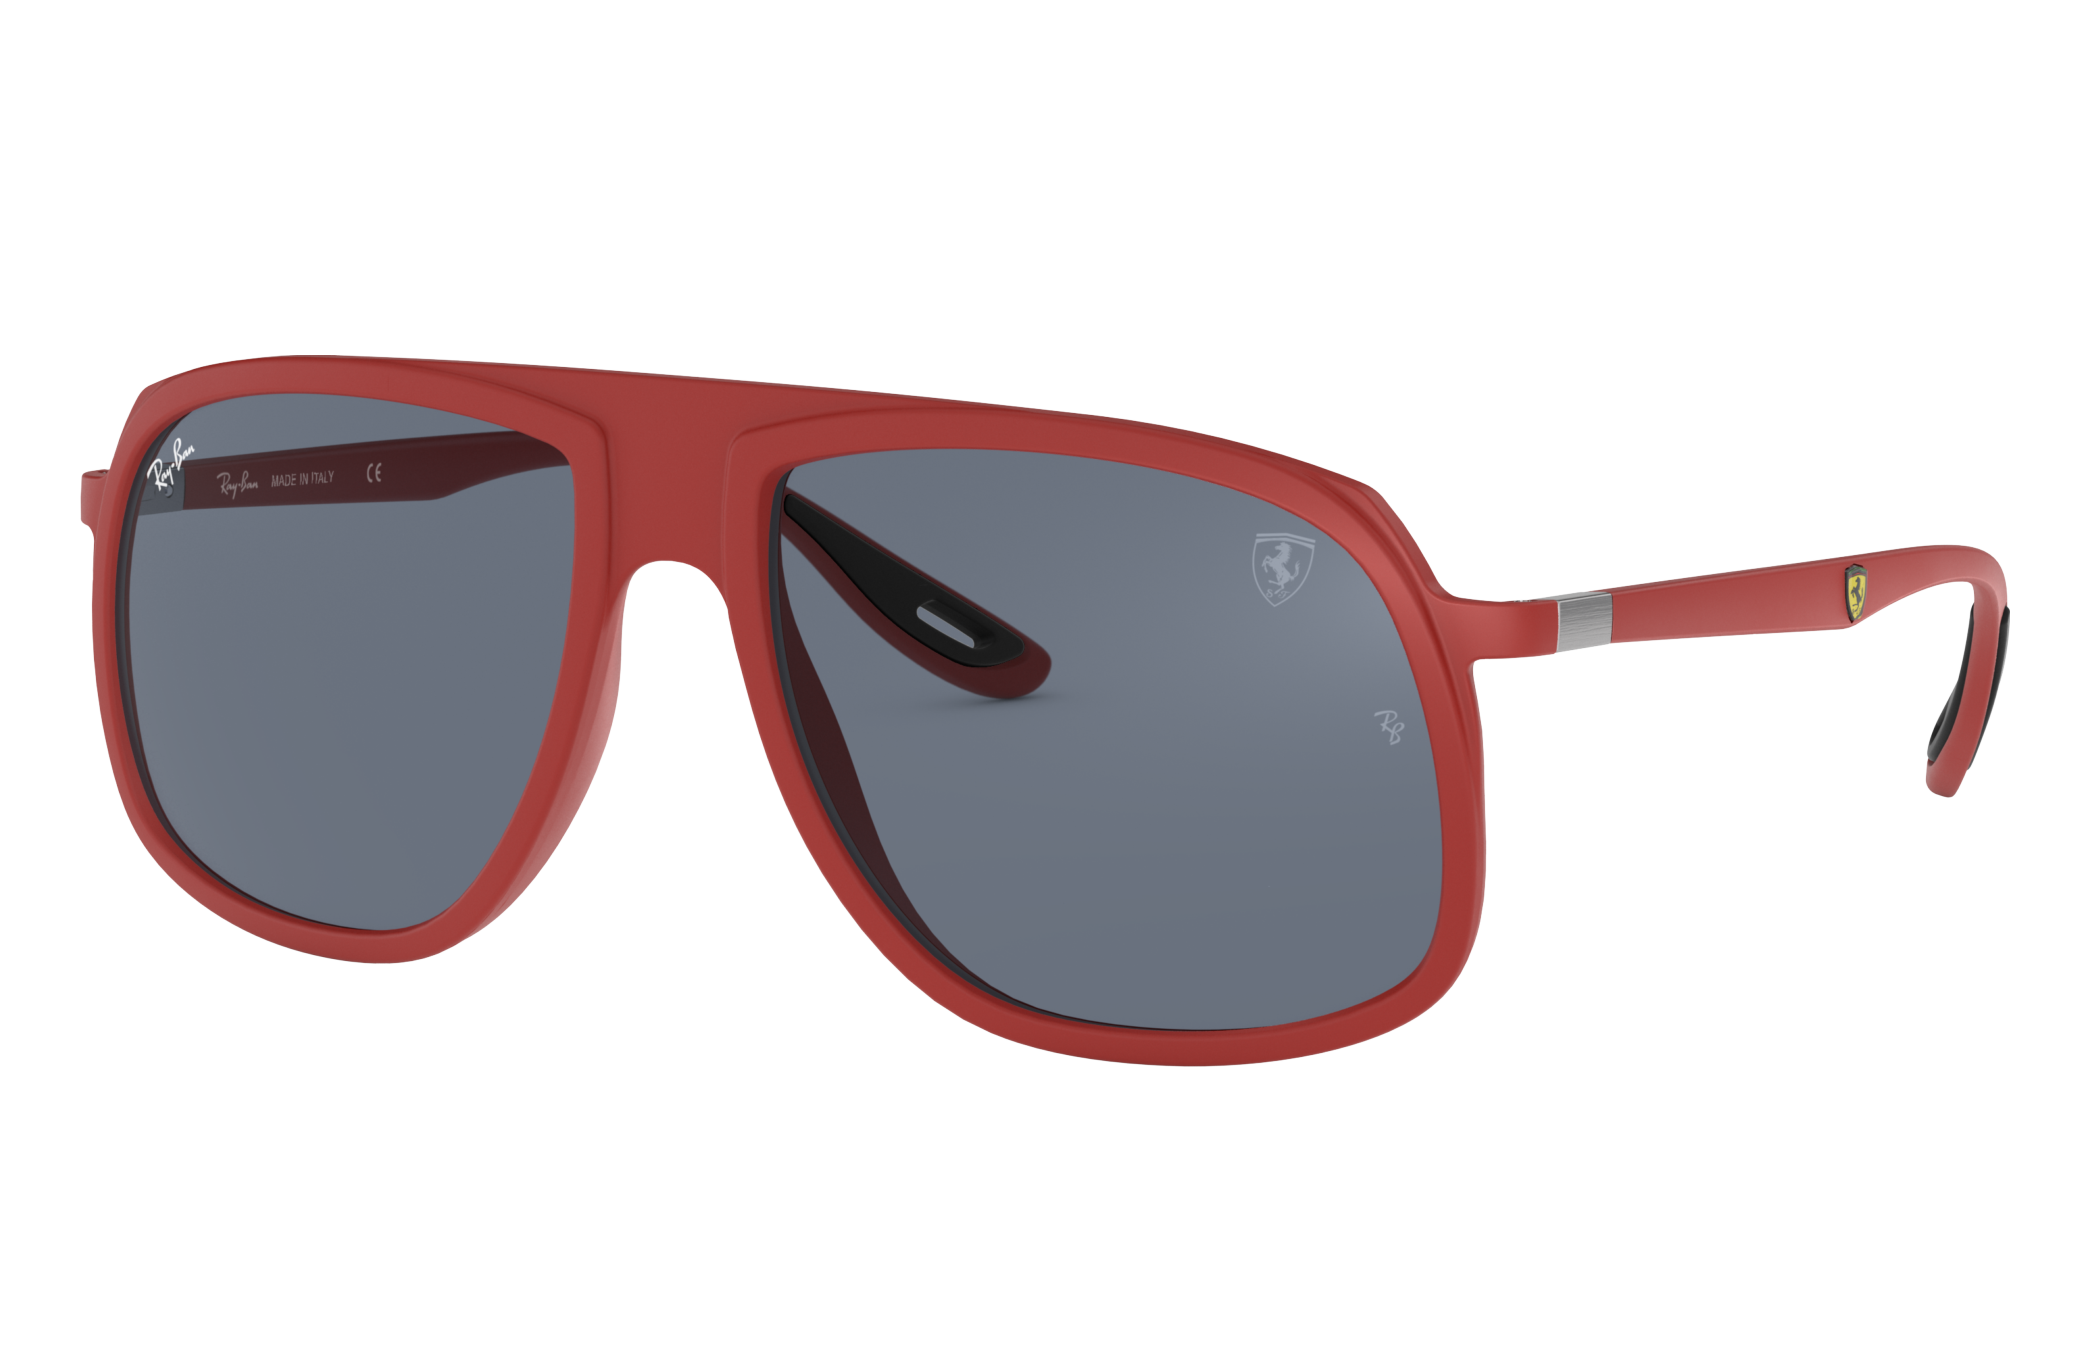 Ray-Ban Rb4308m Scuderia Ferrari Collection Red, Gray Lenses - RB4308M